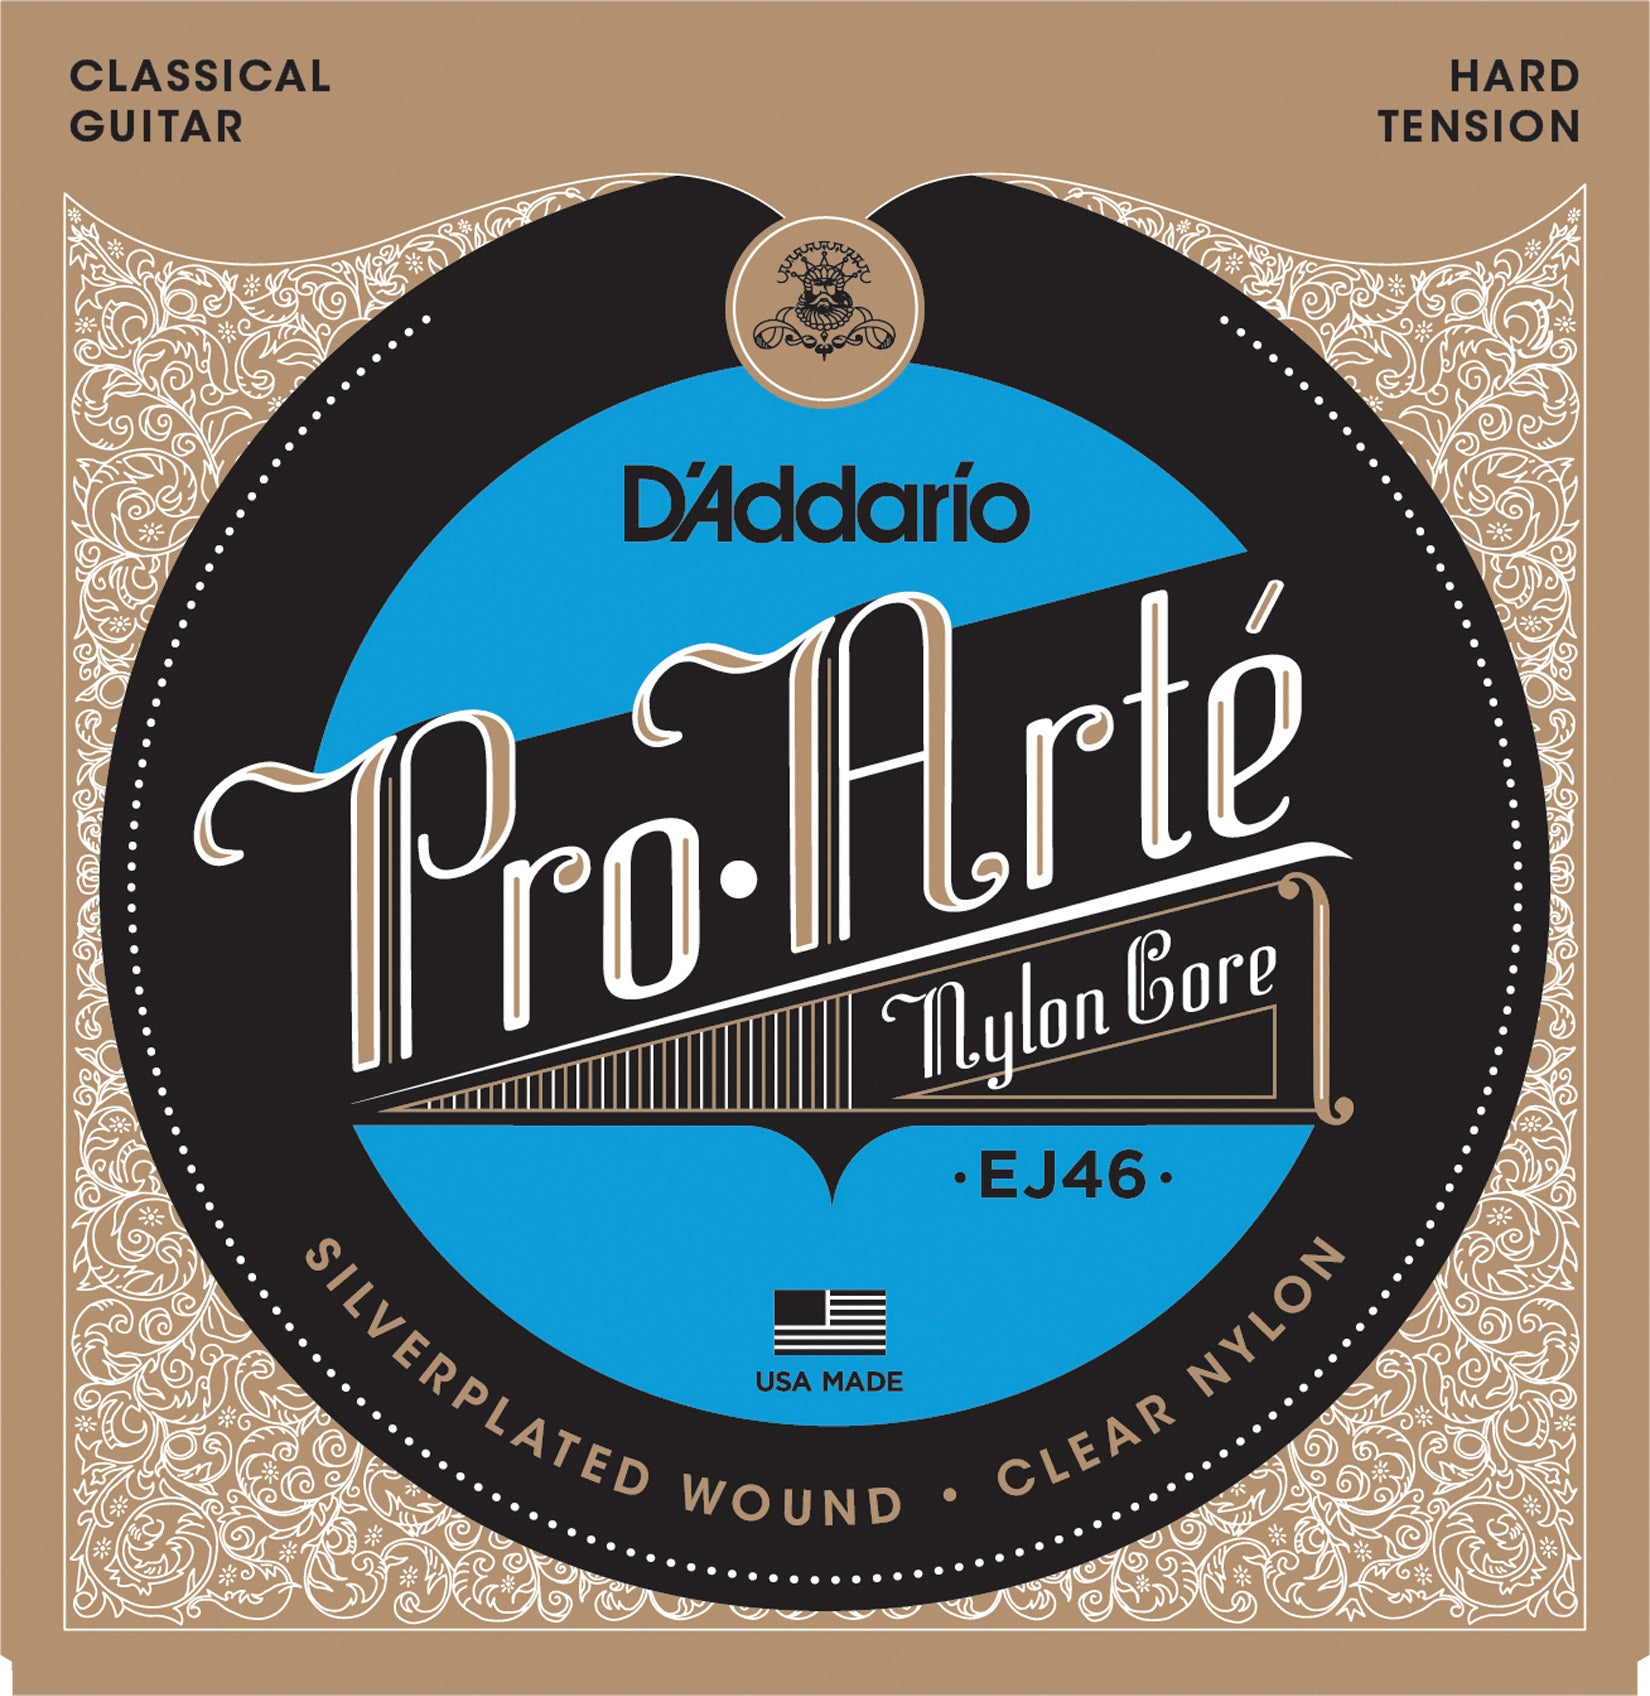 D'ADDARIO PRO-ARTE CLASSICAL GUITAR STRINGS HARD TENSION